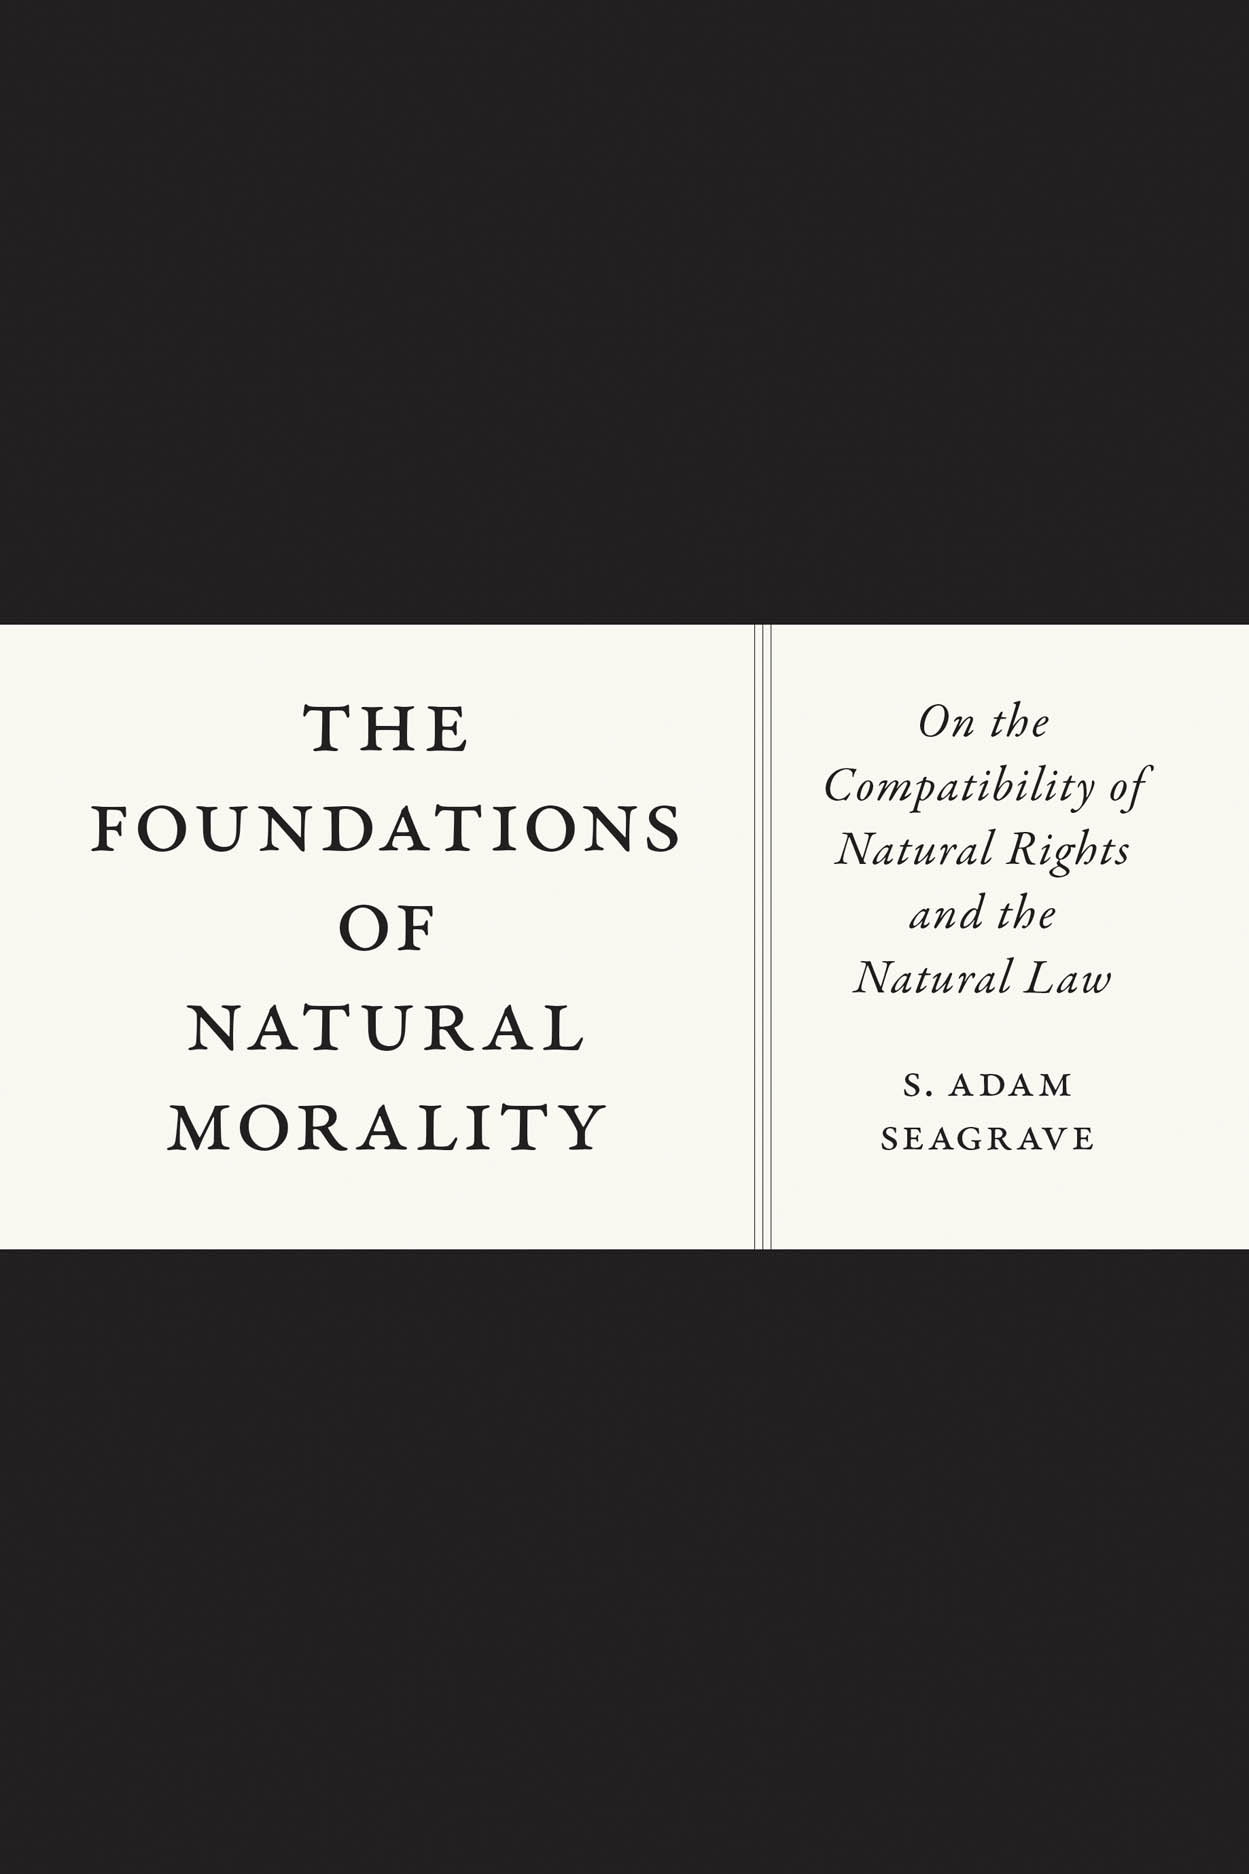 The Foundations of Natural Morality